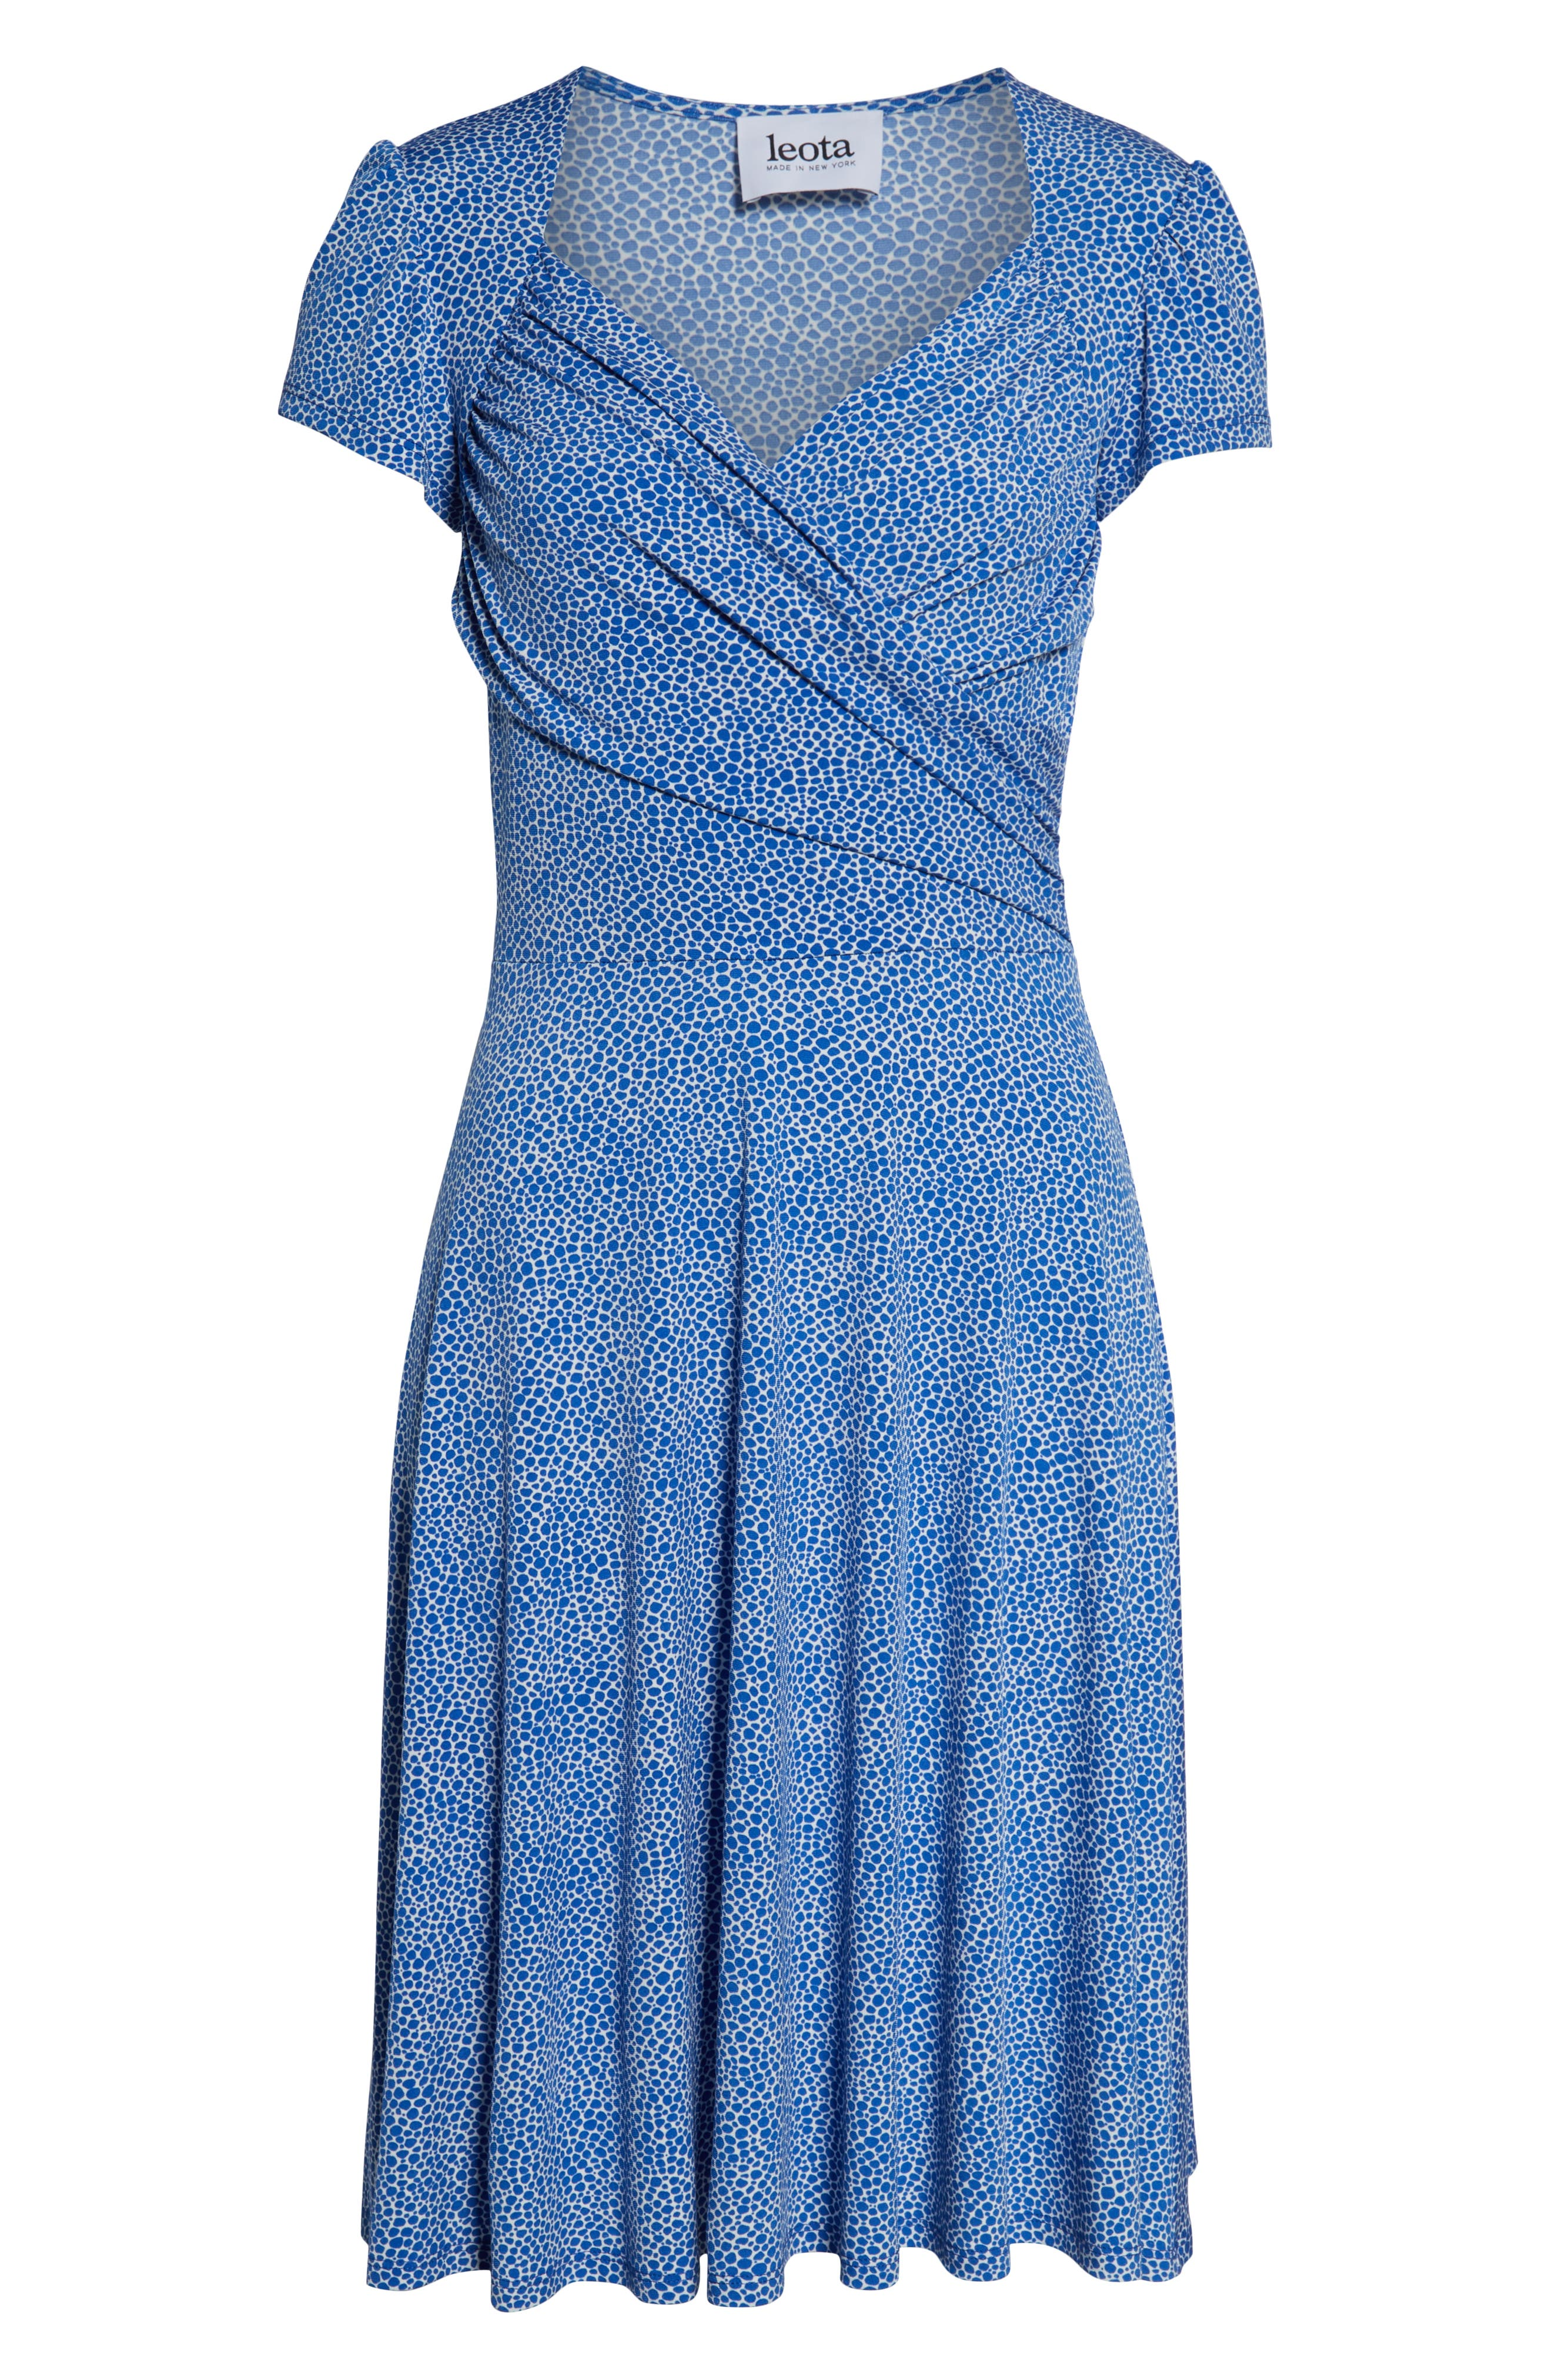 380b1001 Women's Fit & Flare Vacation Dresses   Nordstrom